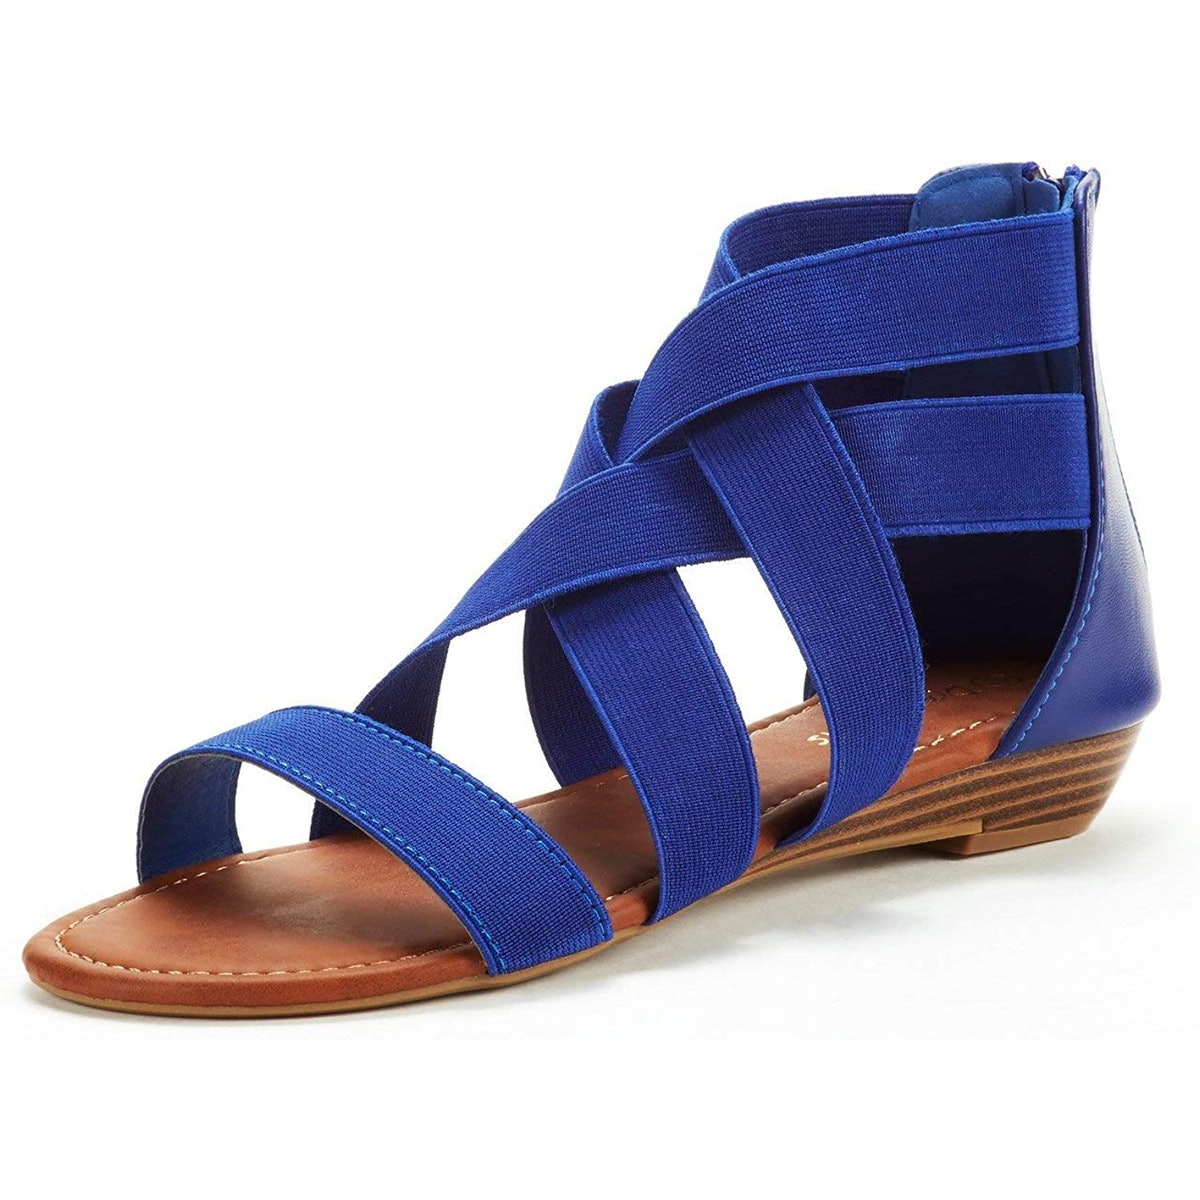 DREAM PAIRS Elastic Ankle Strap Low-Wedge Sandals